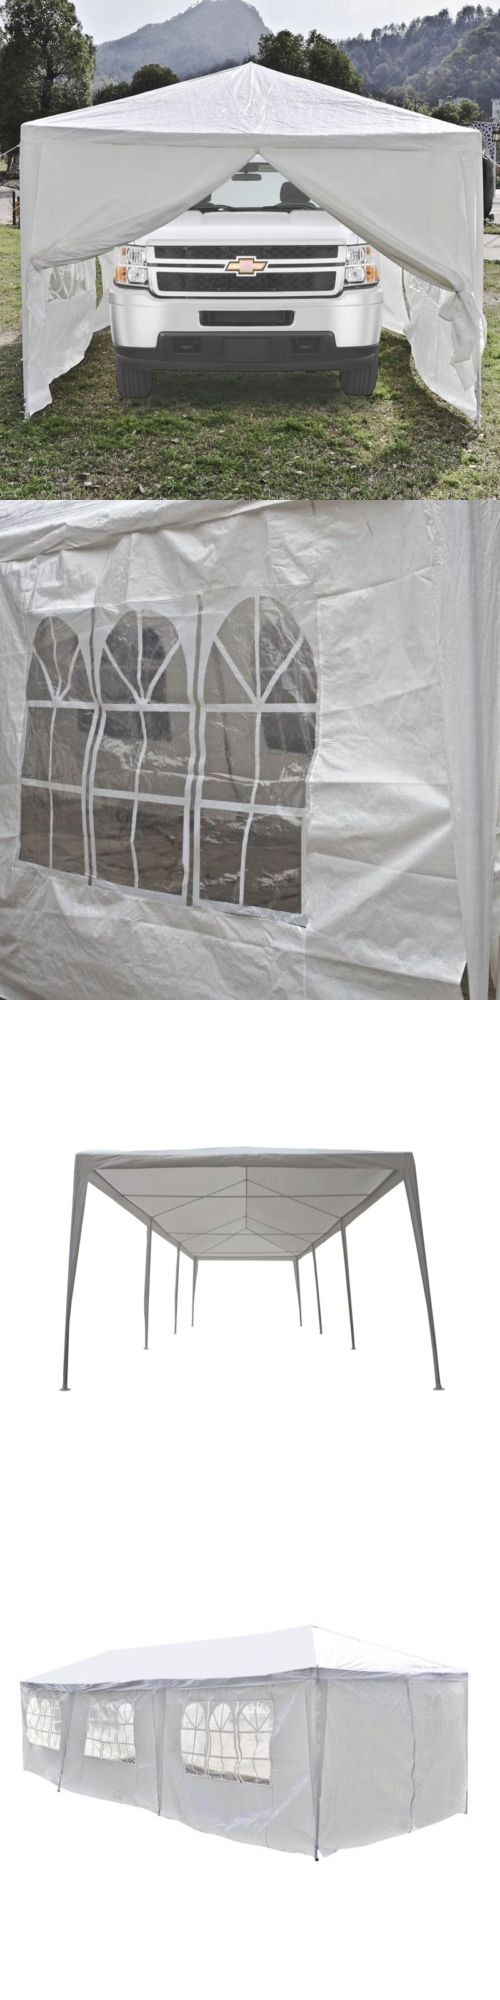 Lancaster pa prefab 2 car garage and 2 story garage manufacturer gears - Marquees And Tents 180994 Aleko Portable Garage Carport Car Shelter Partytent 30 X 10 Ft